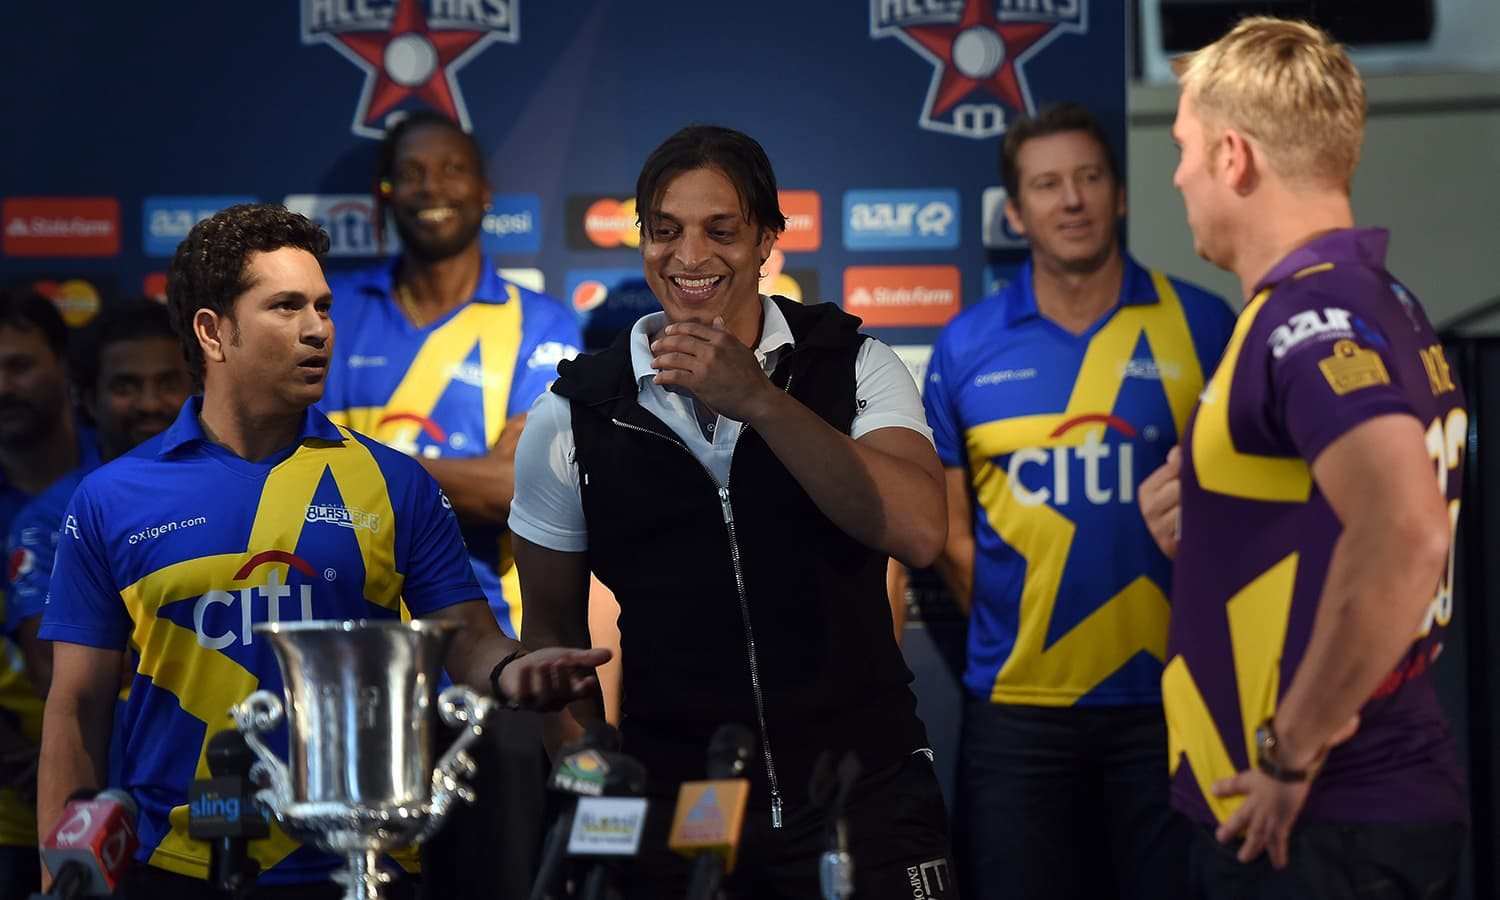 "Australia's Shane Warne (R) and Indian's Sachin Tendulkar (L) toss for Pakistan's Shoaib Akhtar during a press conference in New York on November 5, 2015. Tendulkar and Warne will lead a lineup of renowned cricket players from around the world in the inaugural ""Cricket All-Stars,"" a three-game series to be played in Major League Baseball stadiums in New York , Houston and Los Angeles, to promote cricket the US. AFP PHOTO/JEWEL SAMAD"